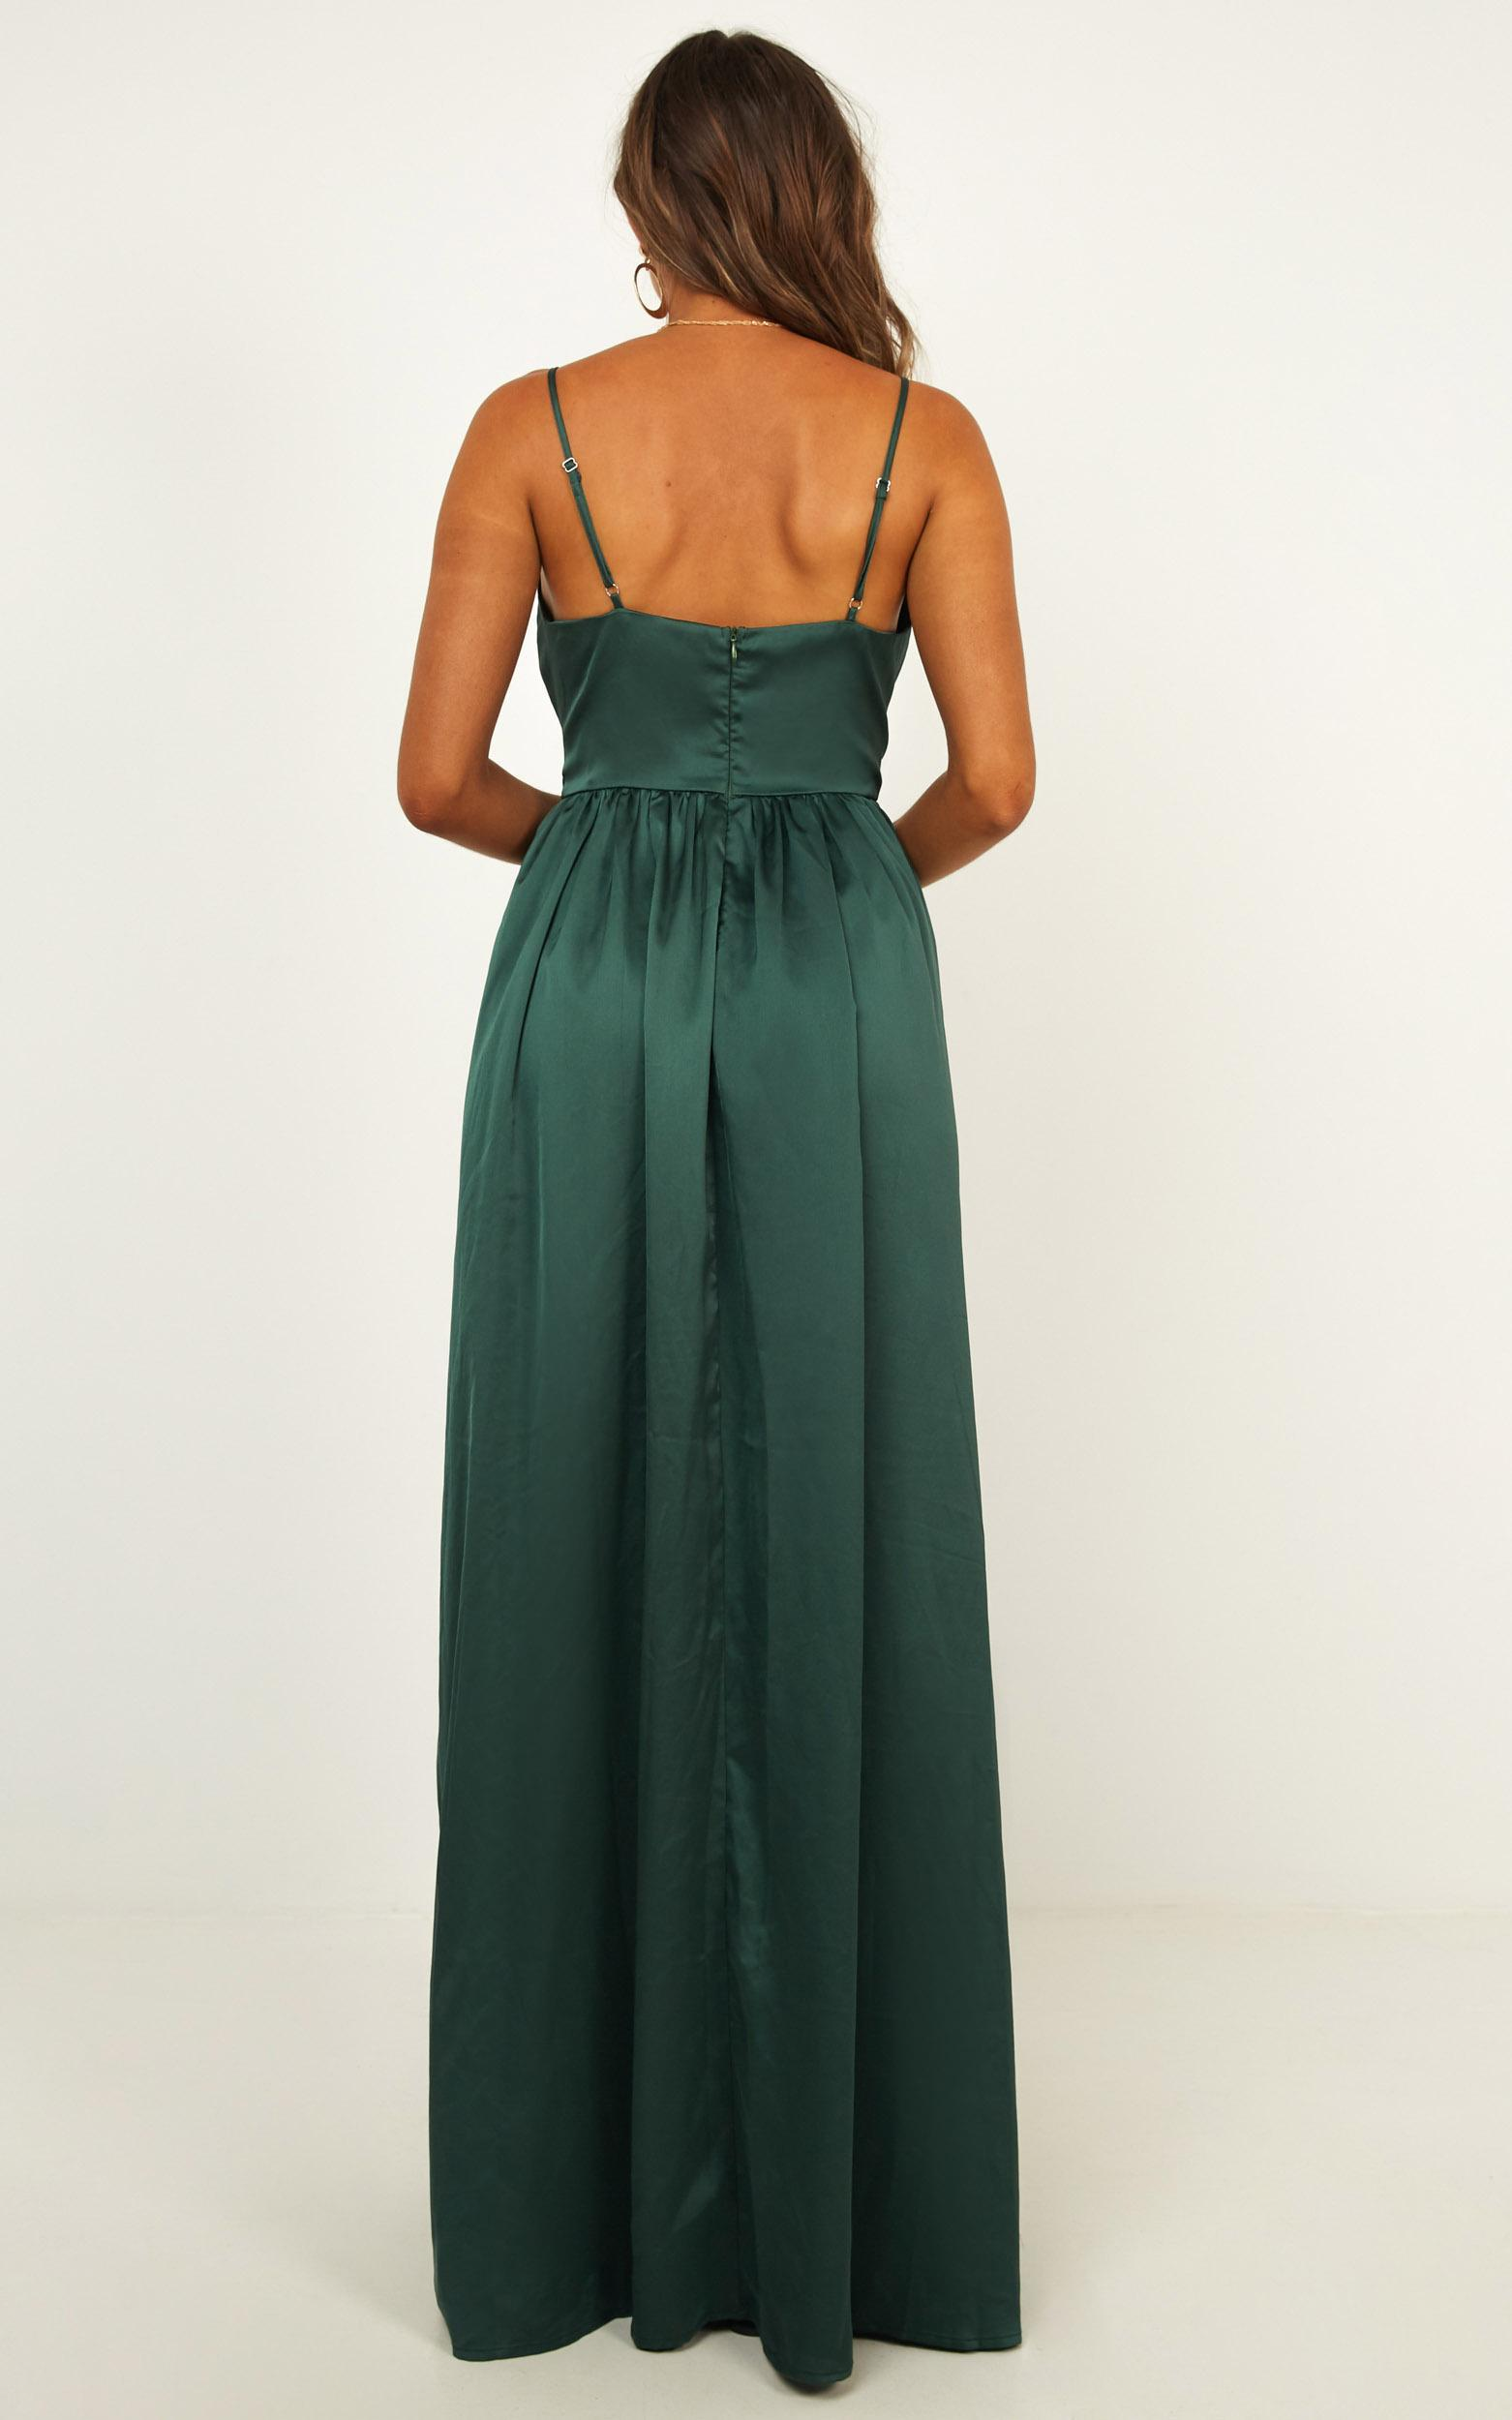 Miracle Worker Dress In Emerald Satin - 6 (XS), Green, hi-res image number null